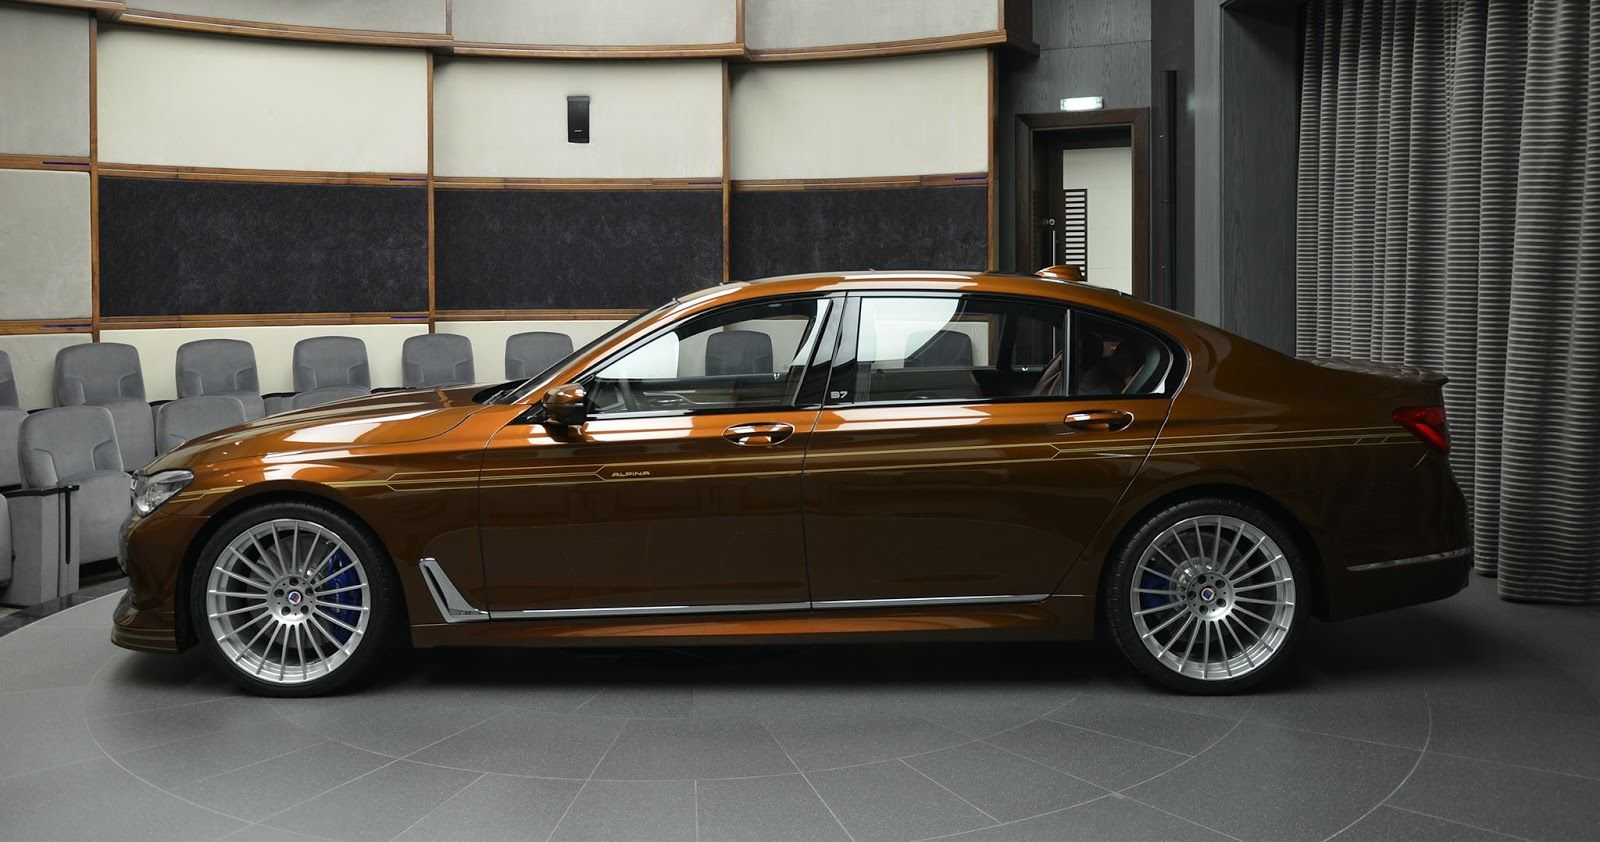 Alpina B7 Individual Certainly Looks Different In Chestnut Brown With Gold Accents Carscoops Bmw Alpina Alpina Bmw 7 Series